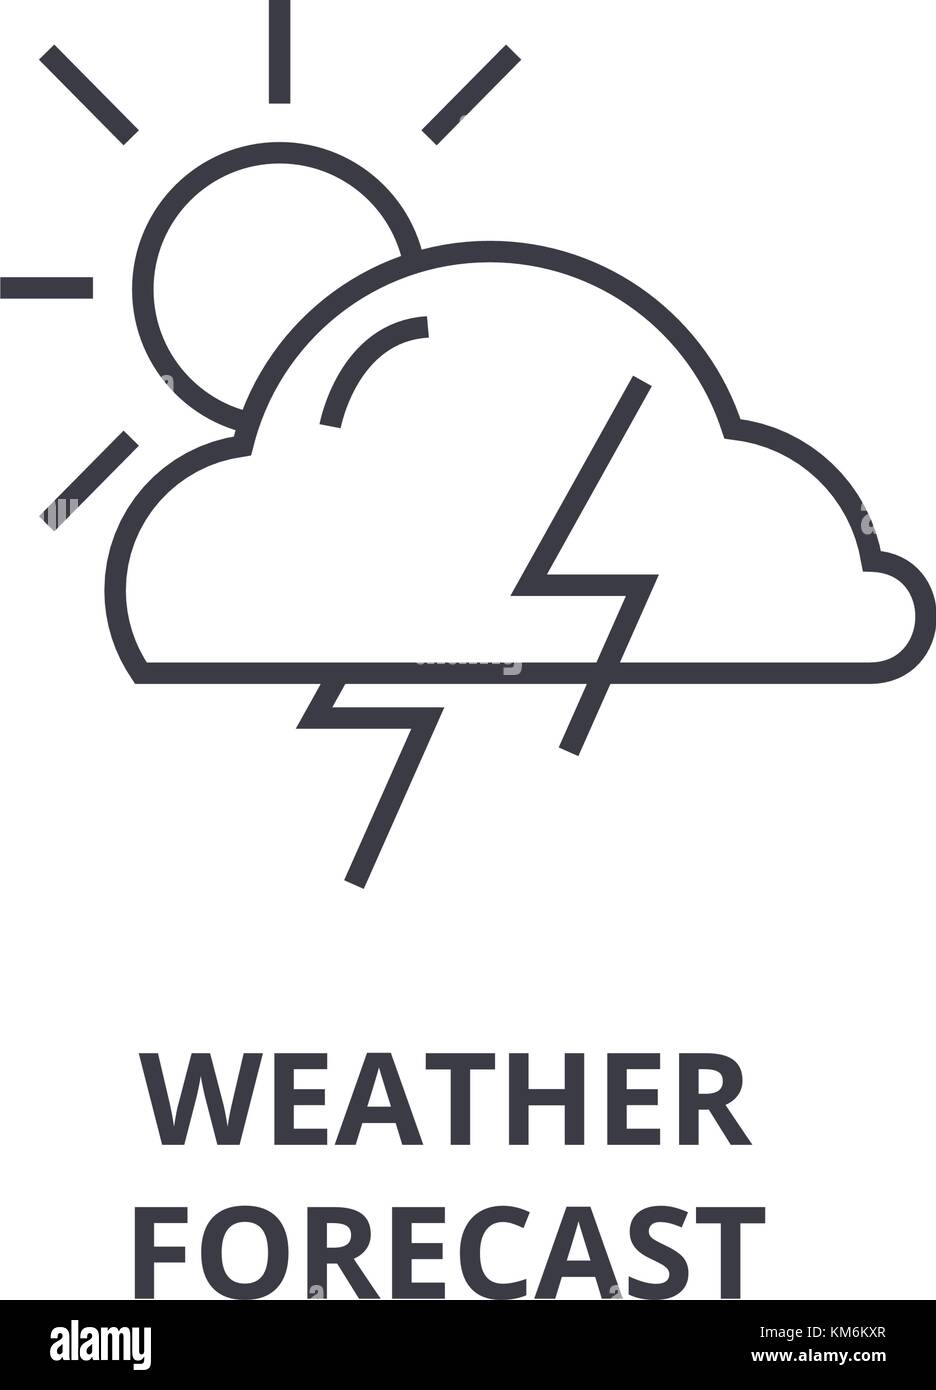 Snow Symbol Weather Forecast Stock Photos Snow Symbol Weather